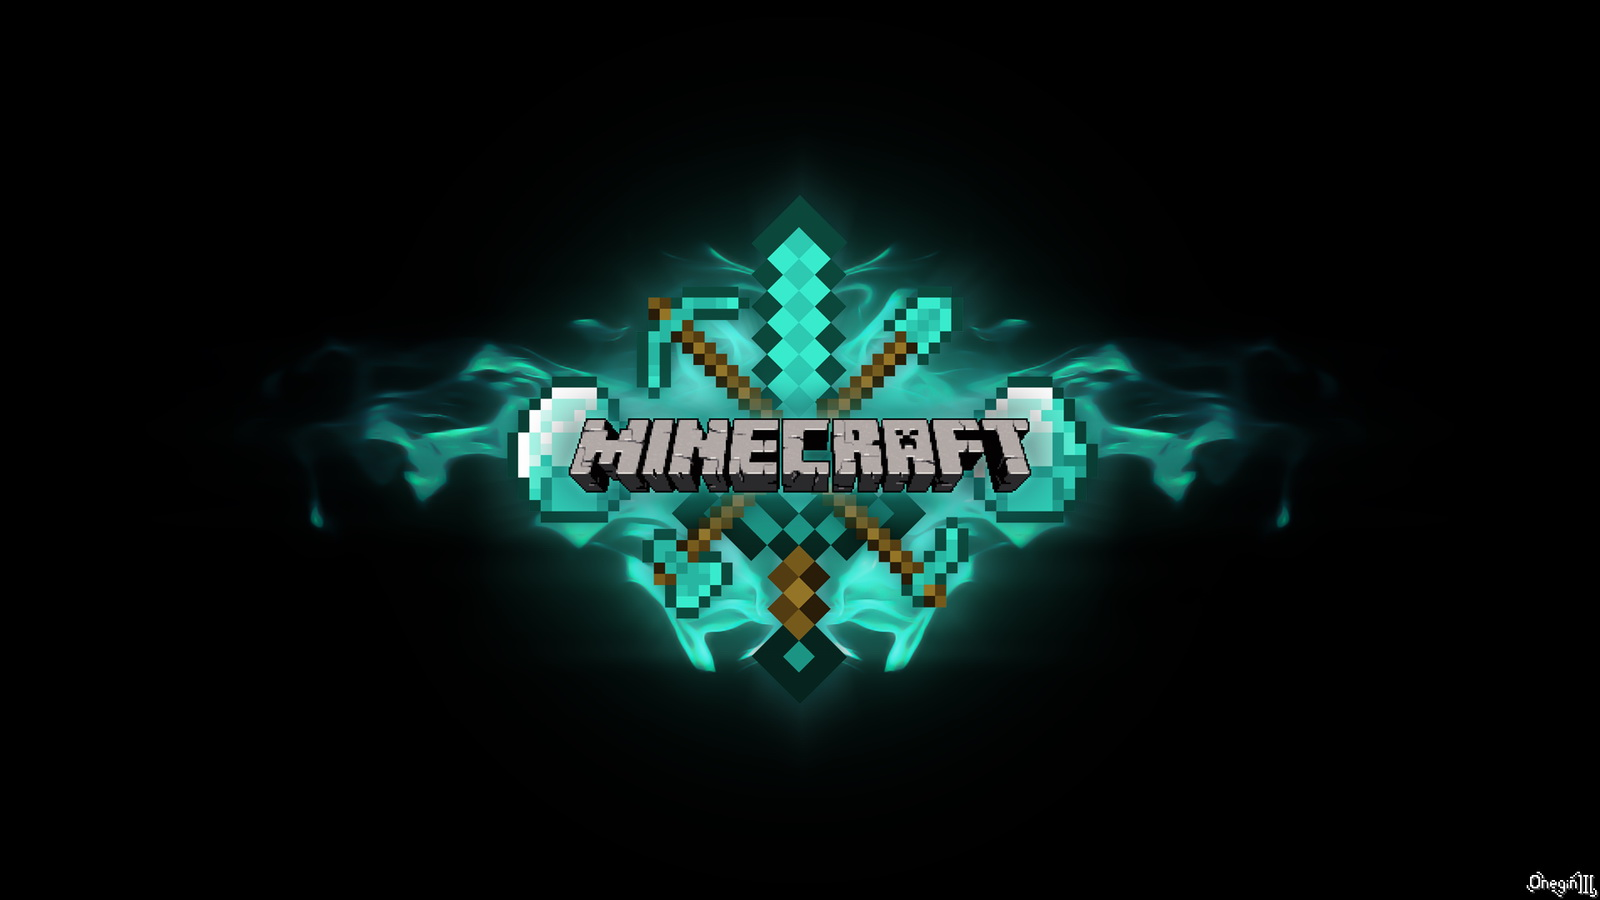 Download Wallpaper Minecraft Galaxy - Minecraft-Free-Wallpapers-050  Pictures_725542.jpg